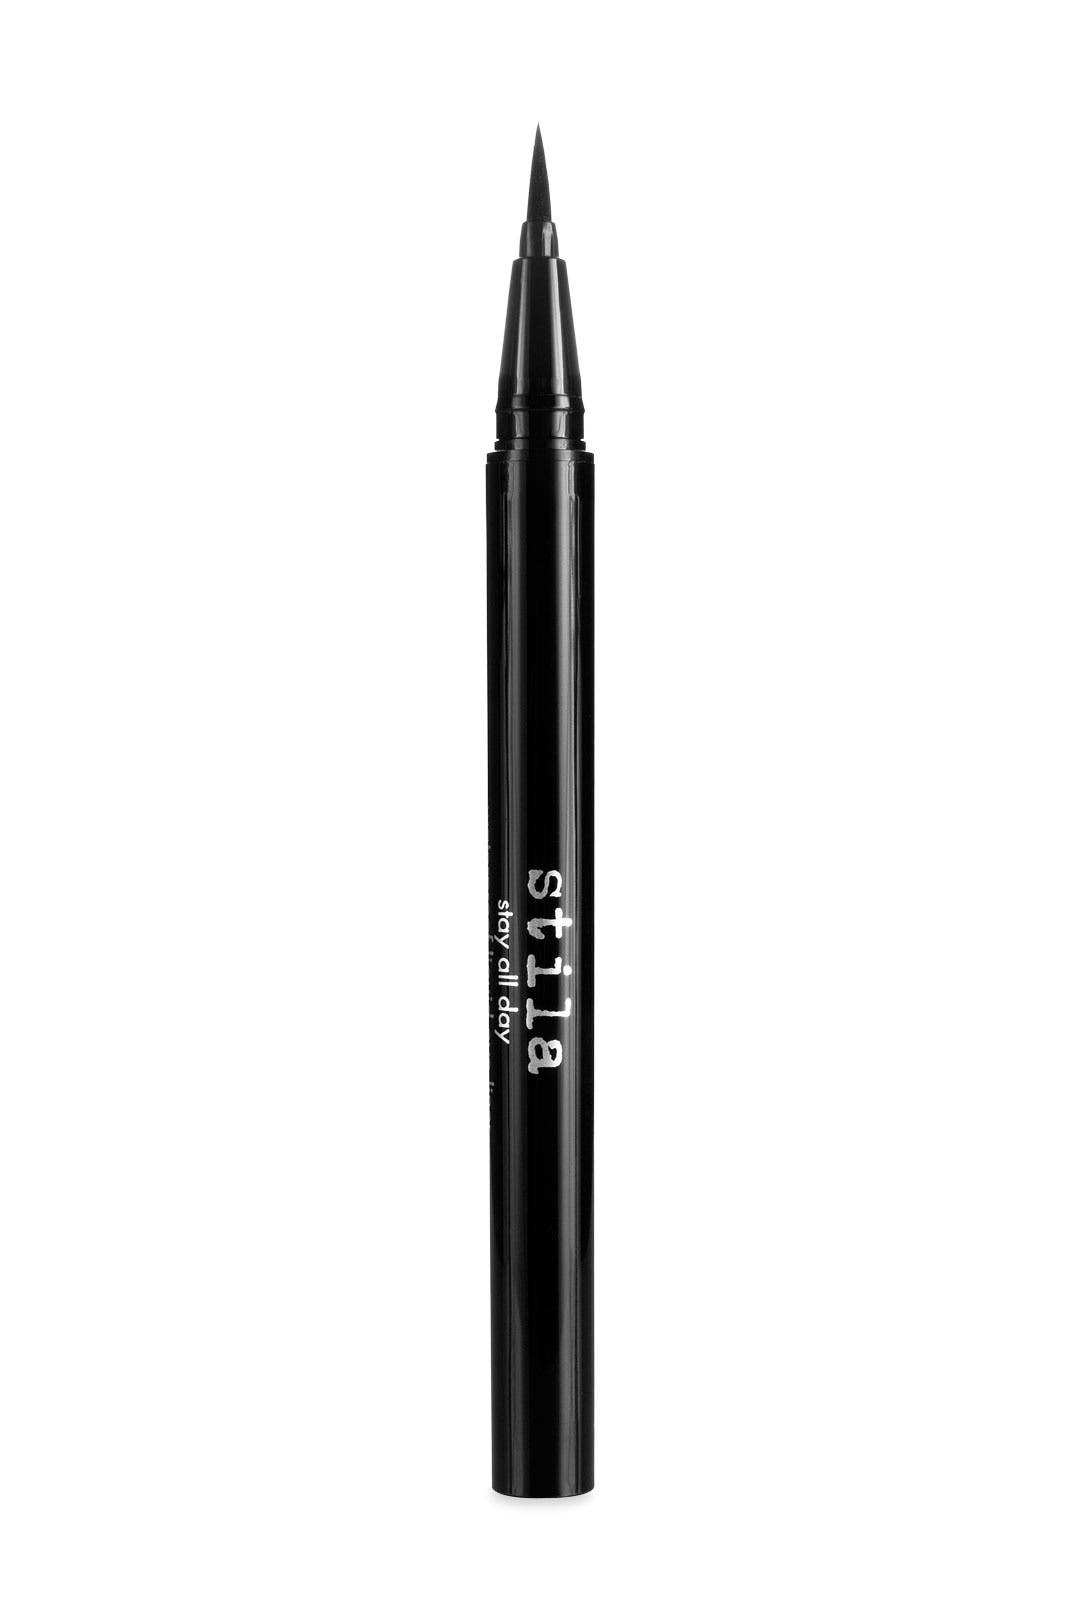 stay all day waterproof liquid liner by stila